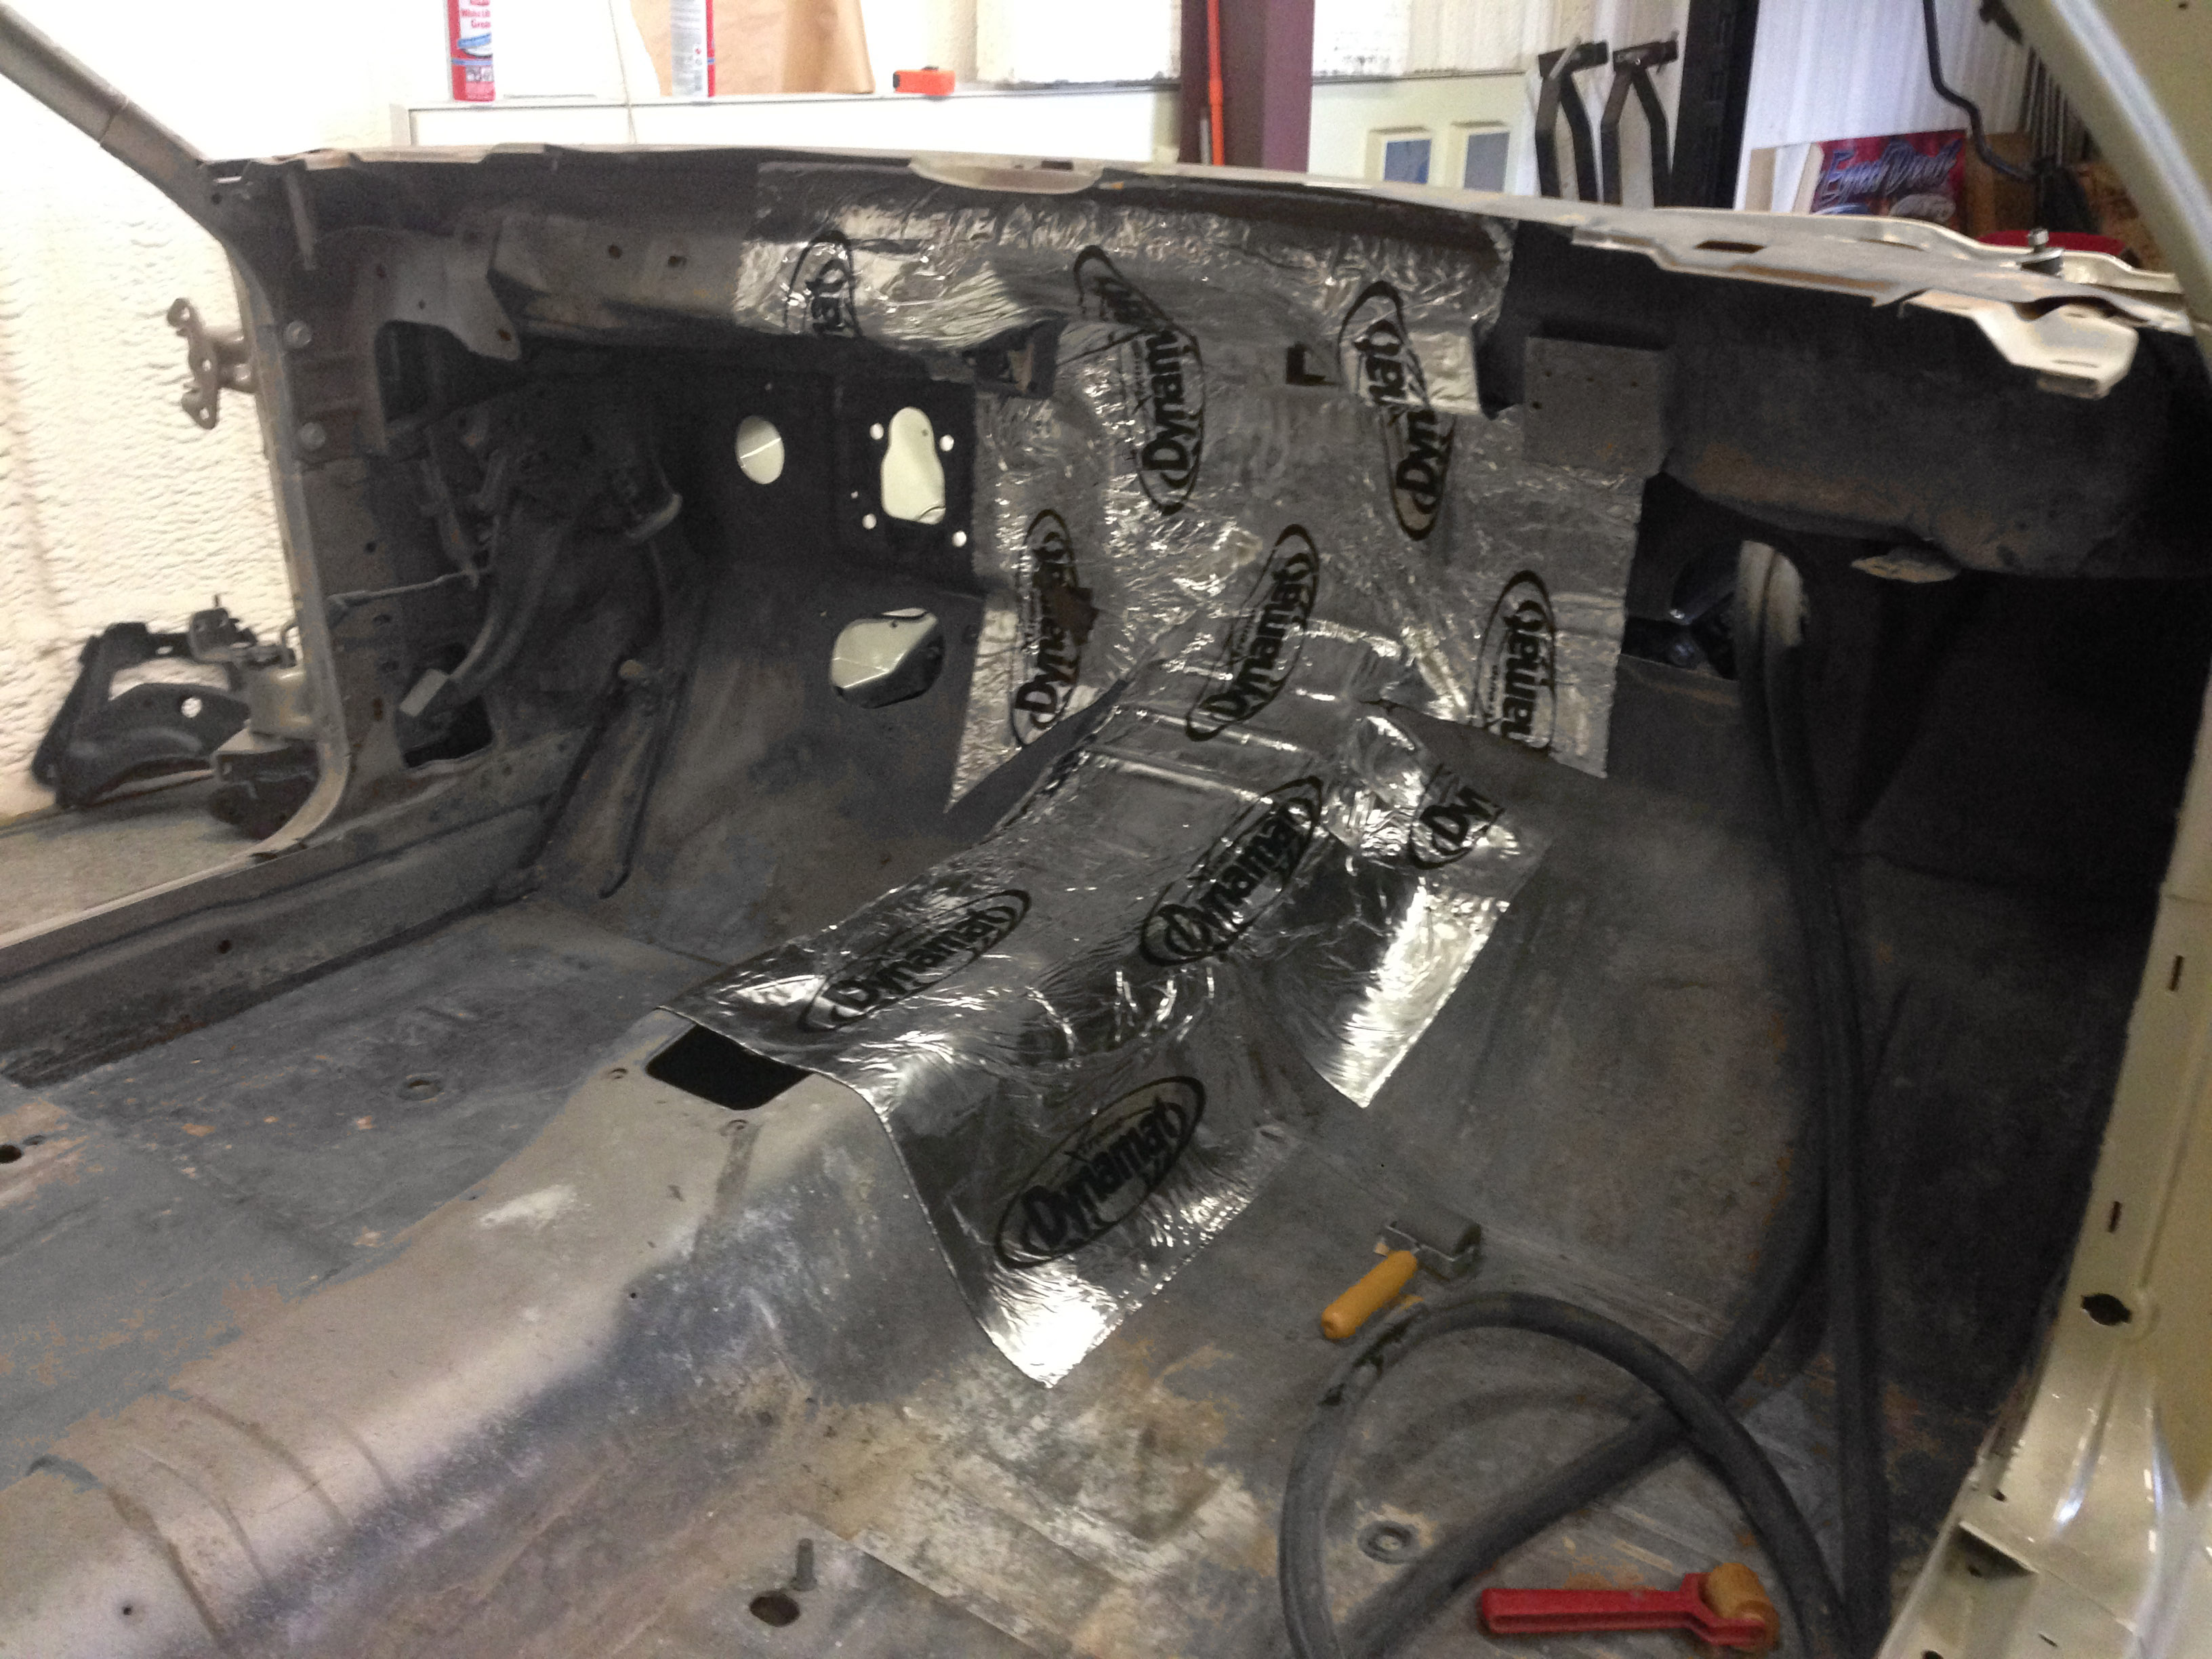 Gutted interior getting Dynamat